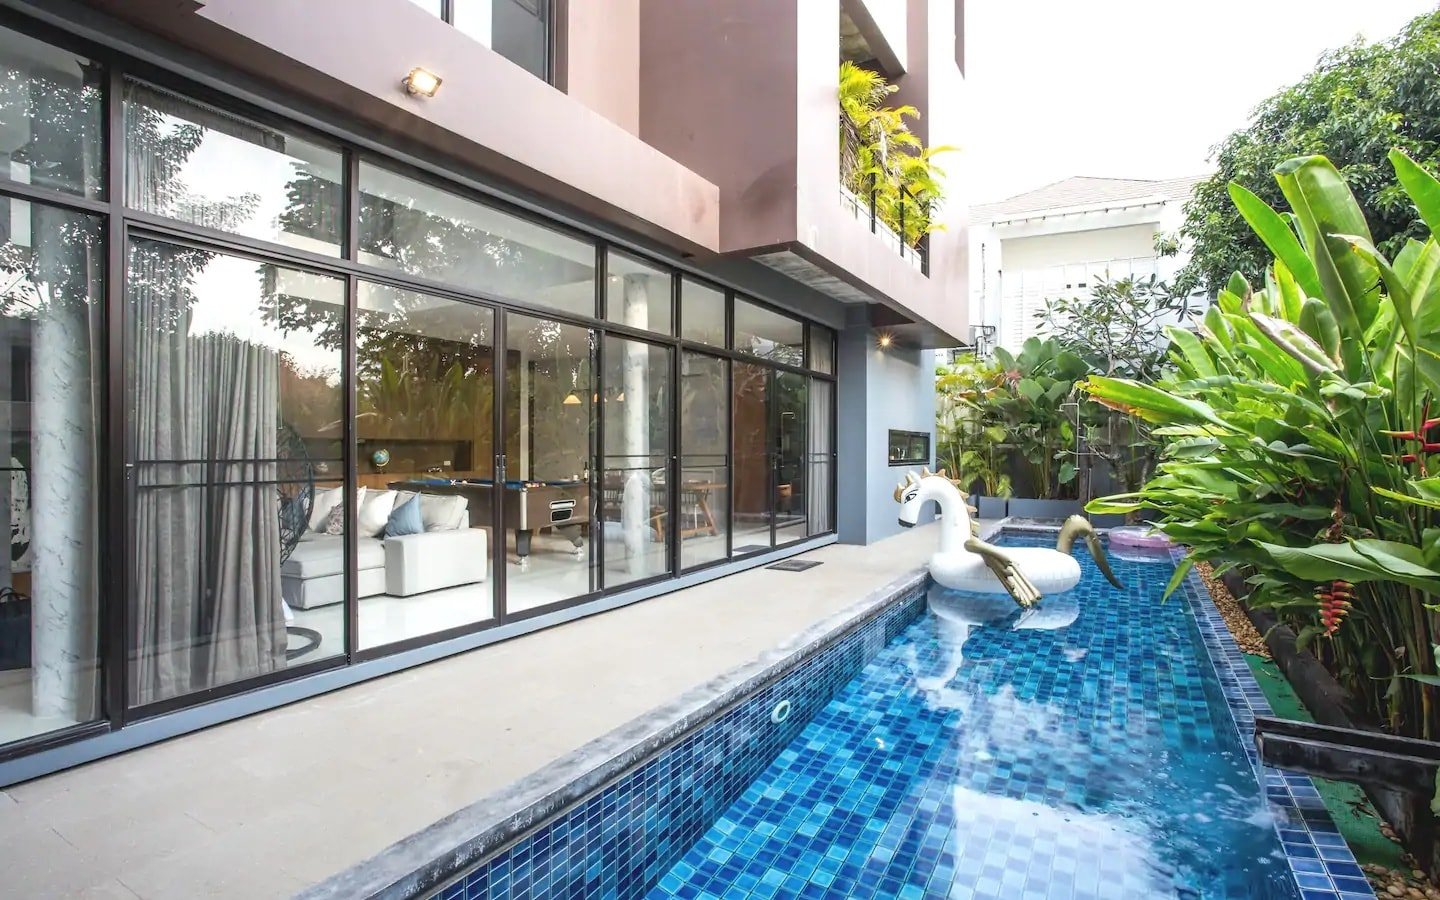 pool villa in Thonglor Bangkok with floatable unicorn in the pool